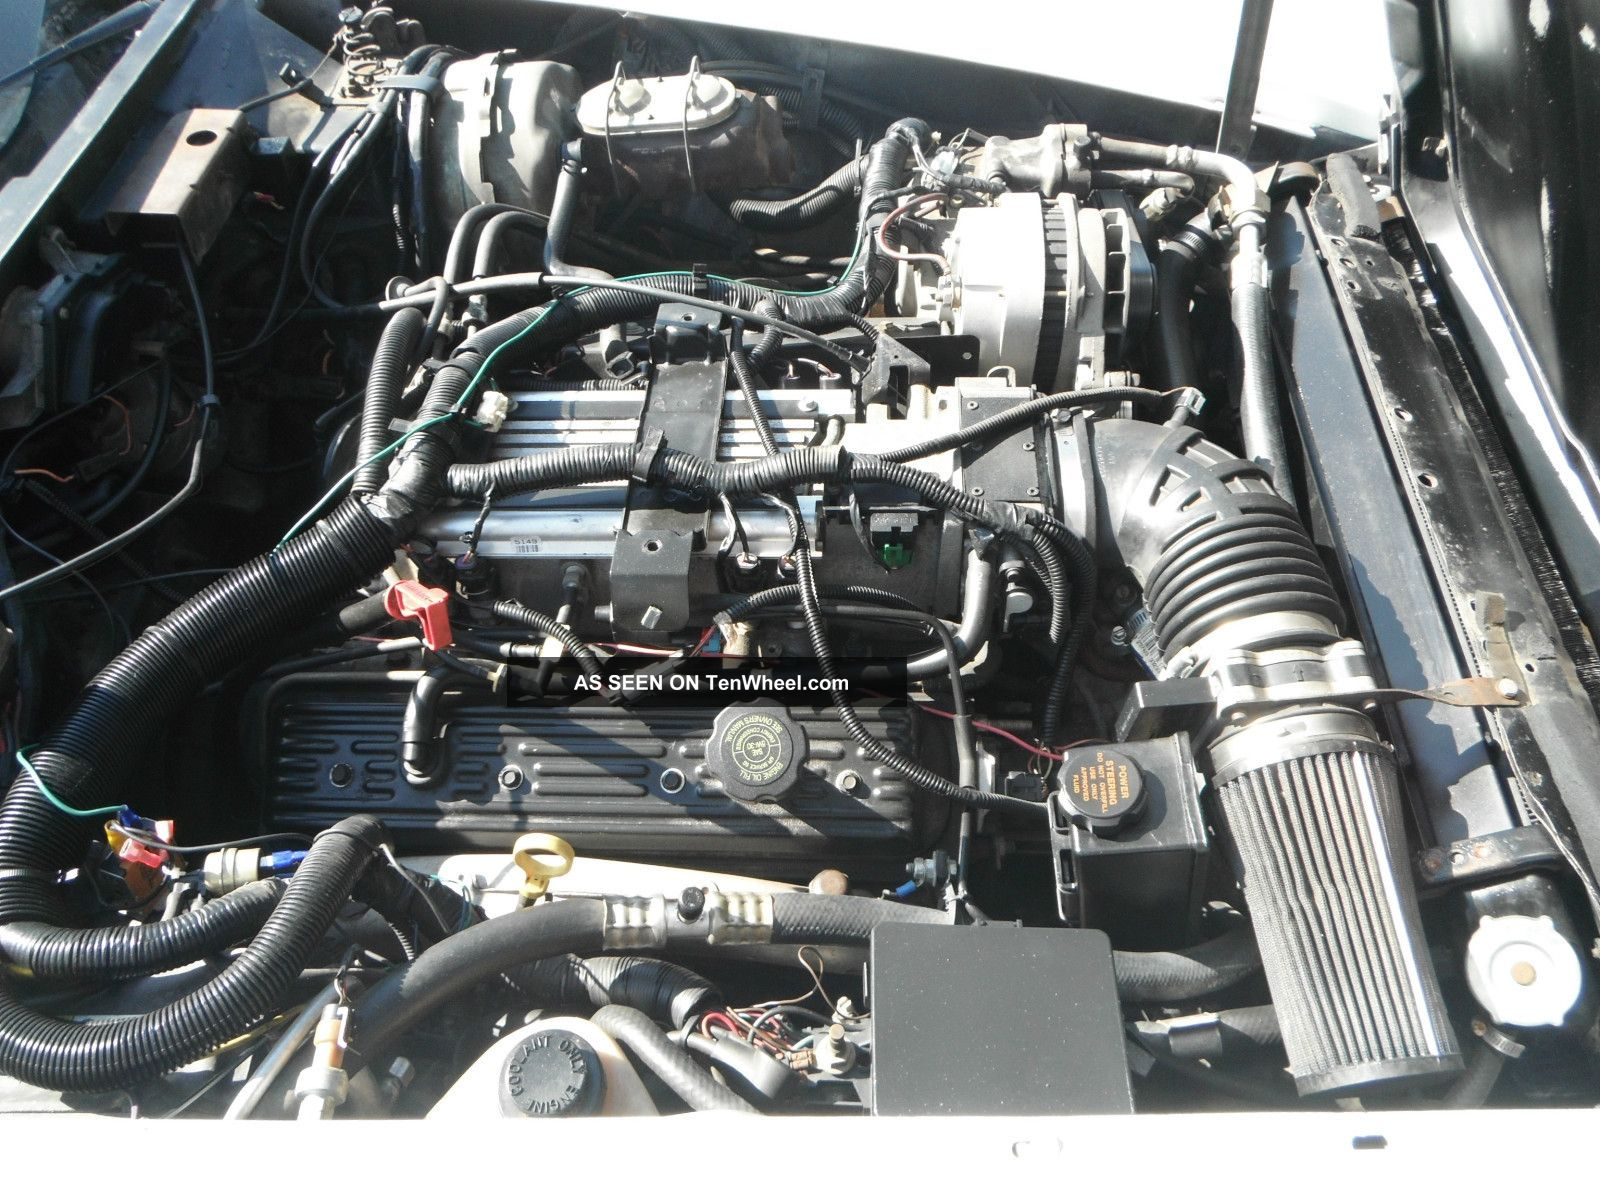 Ac E C Low Res together with Pontiac Engine likewise Heater Hoses together with Chevrolet Malibu moreover . on 1995 engine 350 v8 specs